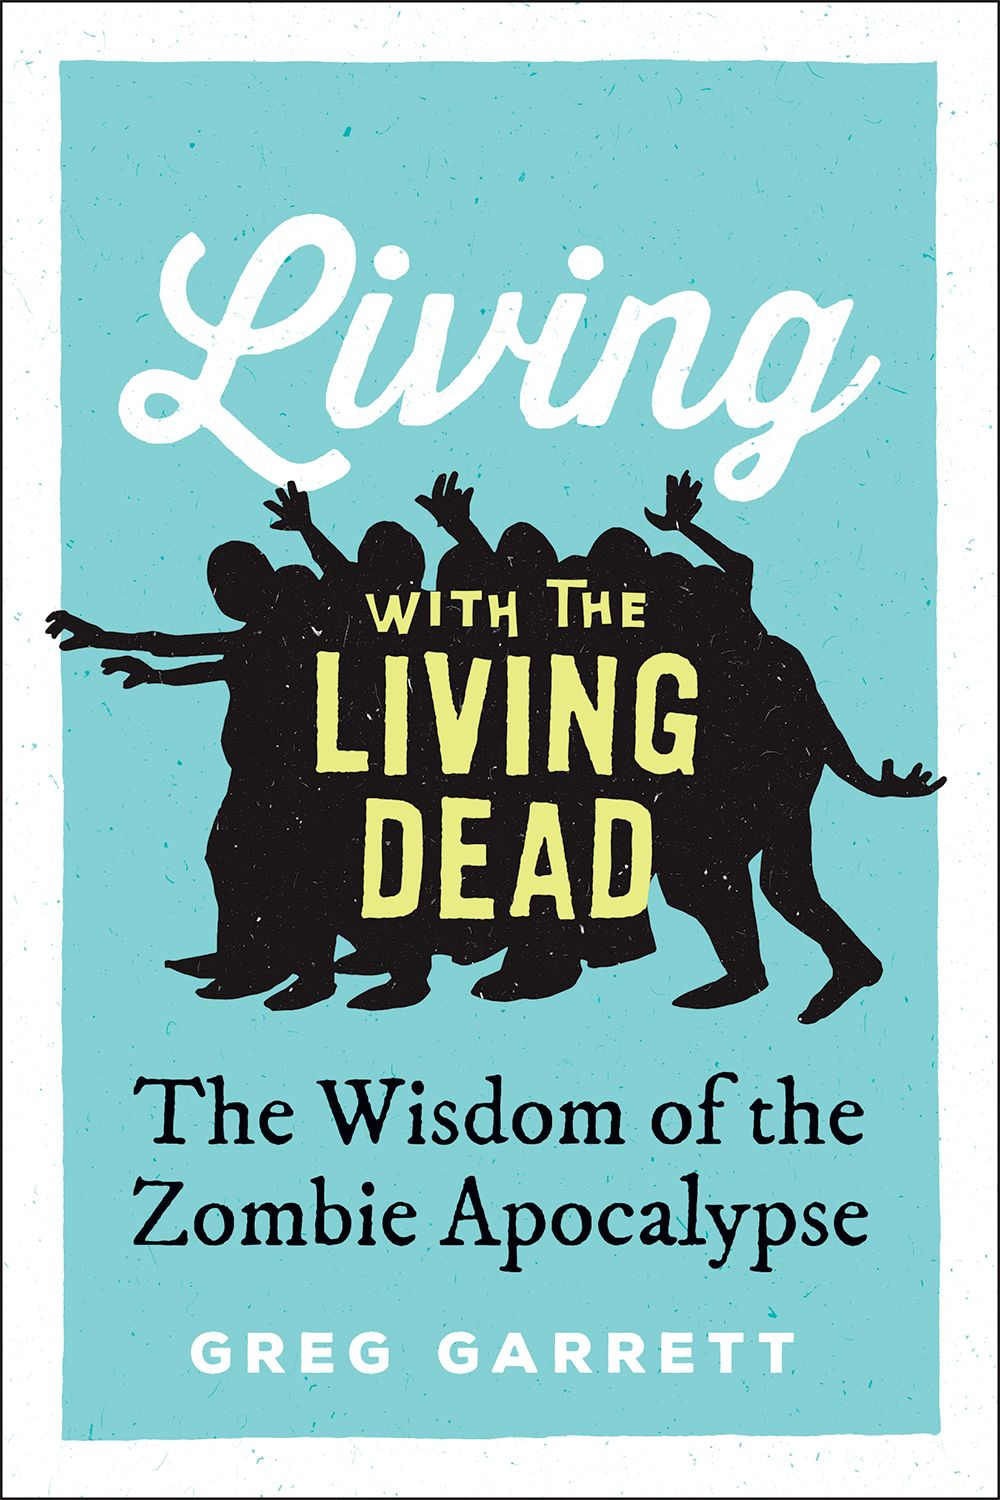 Living with the Living Dead: The Wisdom of the Zombie Apocalypse with Greg Garrett